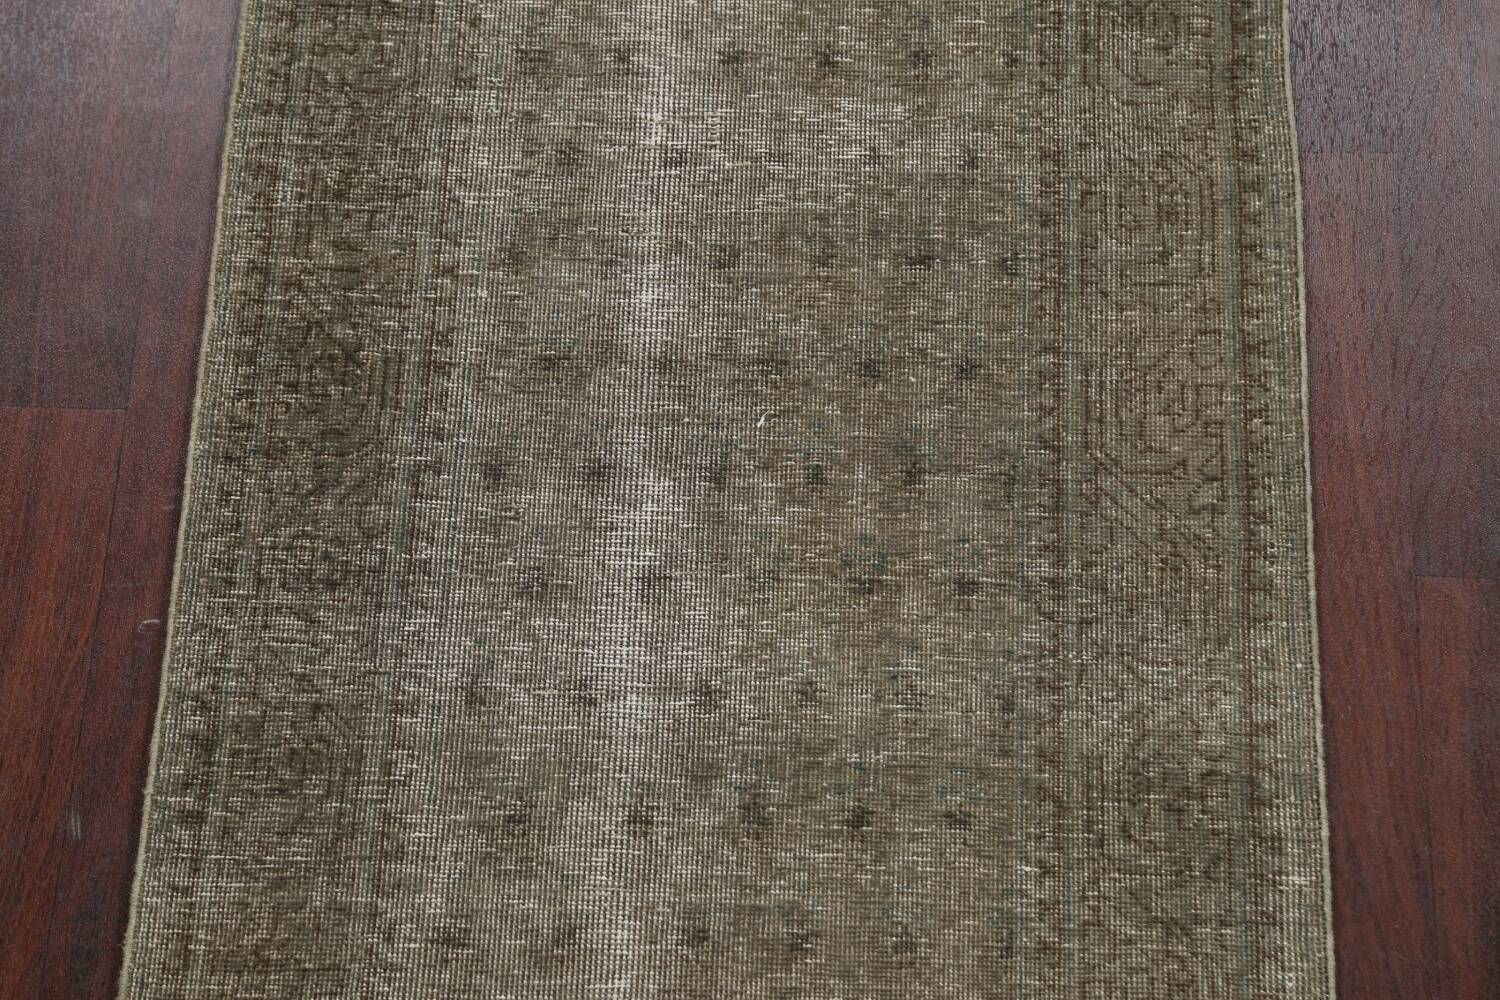 Muted Distressed Tabriz Persian Runner Rug 3x13 image 4